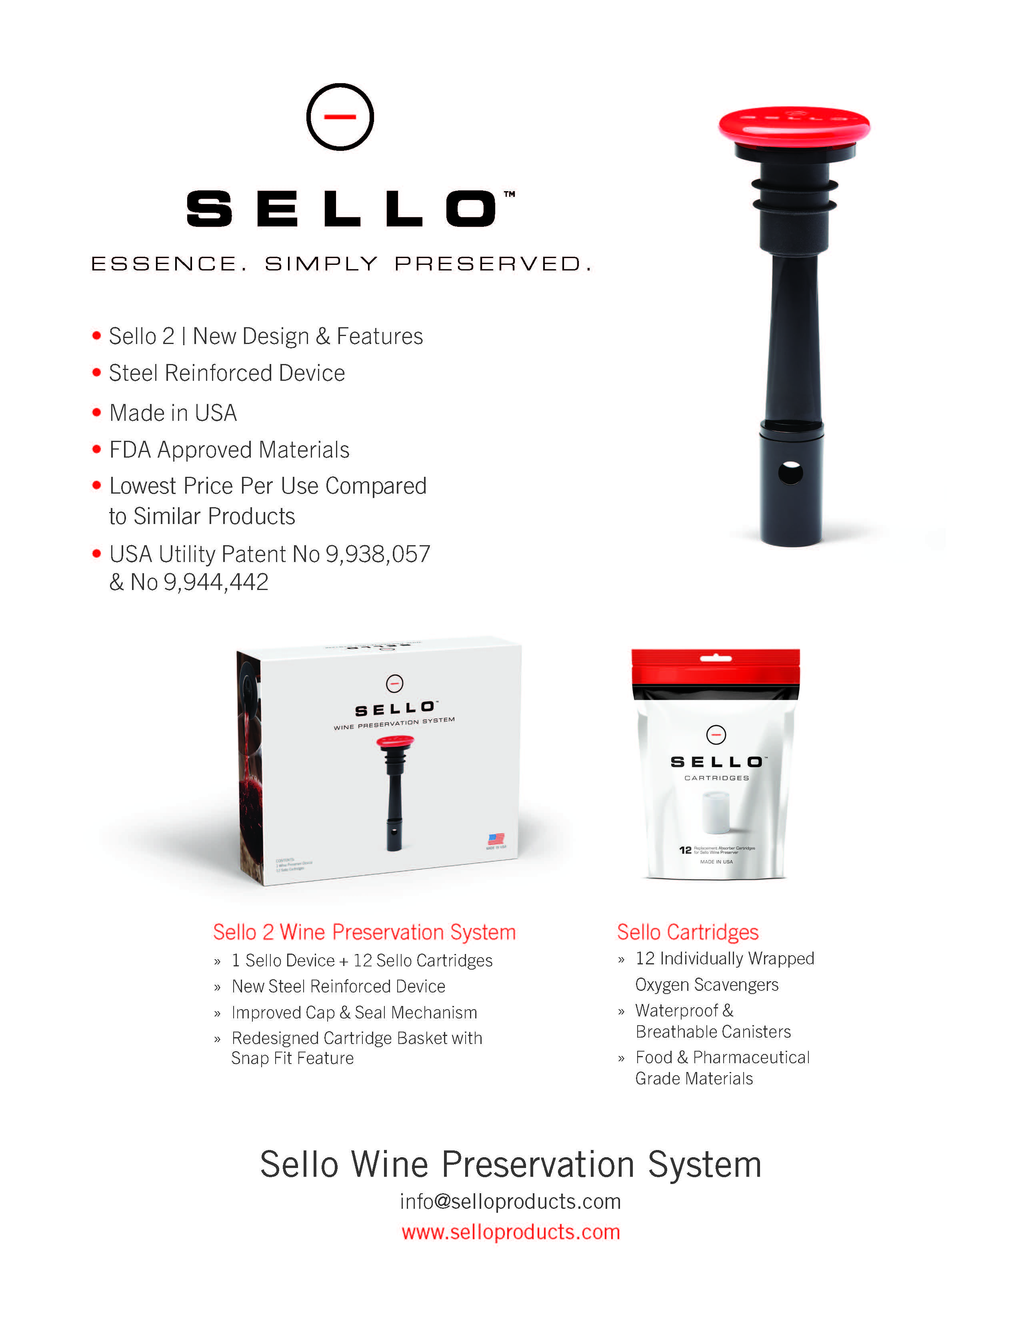 Sello Wine Preservation System